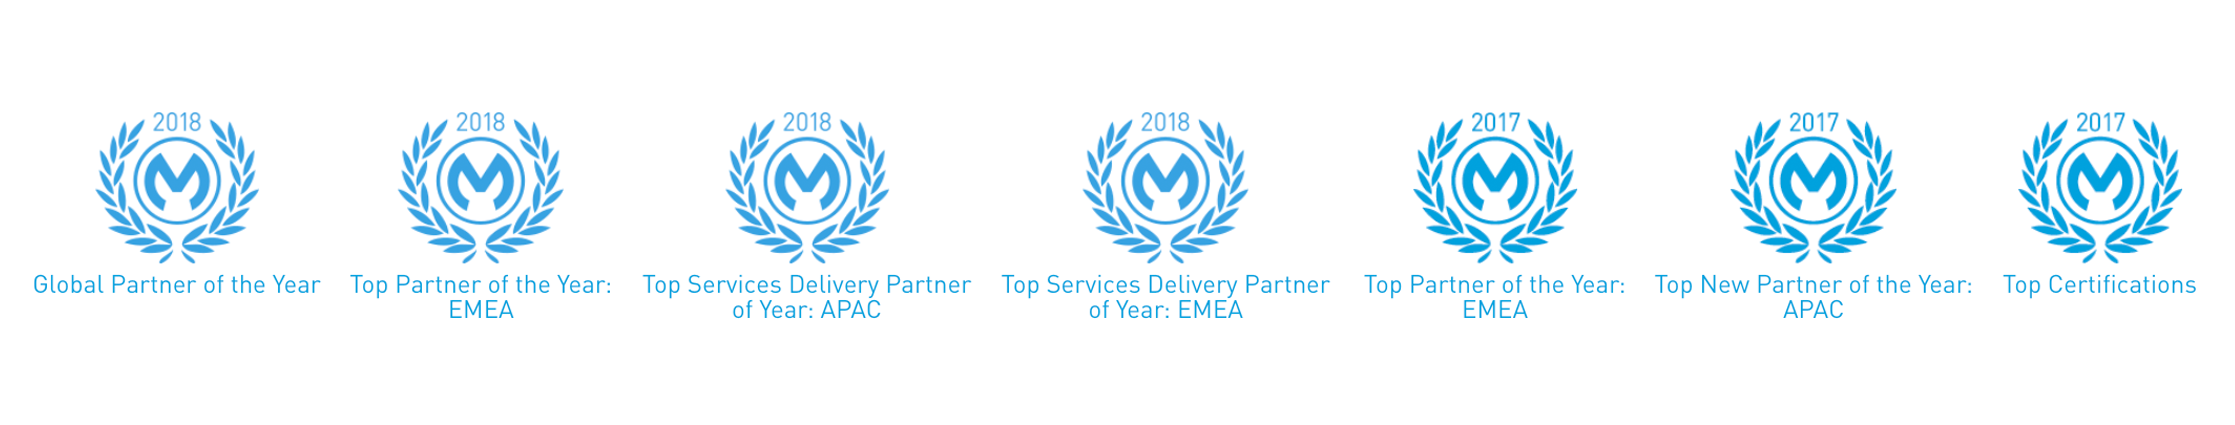 Capgemini named MuleSoft Partner of the year 2018 and 2017